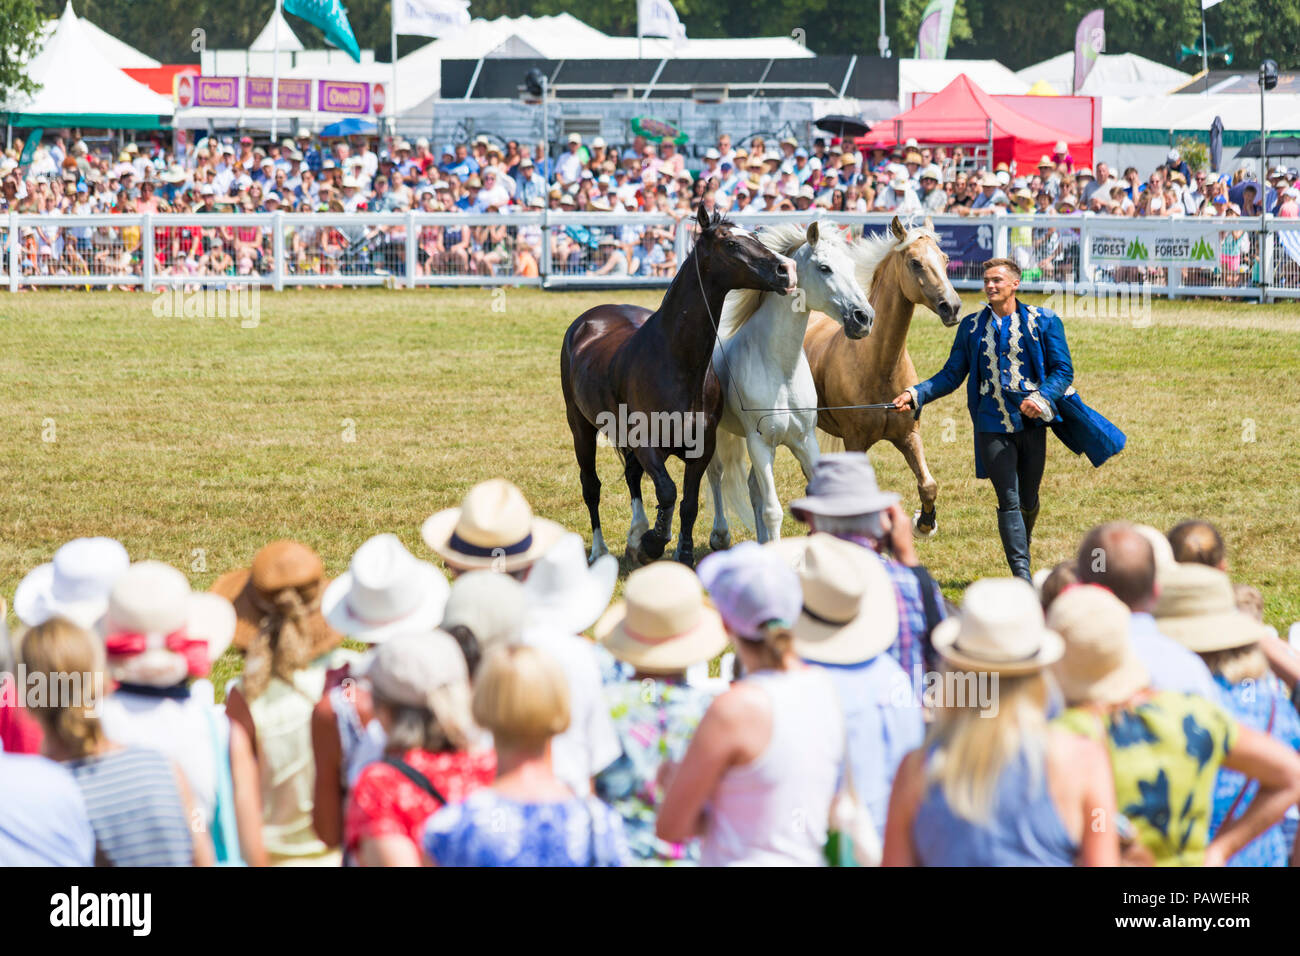 Brockenhurst, Hampshire, UK. 25th July 2018. Crowds flock to the second day of the New Forest & Hampshire County Show on a hot sunny day. The Atkinson Stunt Display team who appeared on Poldark and Peaky Blinders thrill the crowds with their tricks and stunts, including Roman Riding, Drags, Falls, Pick Ups, Flips, Horses Rearing and Laying Down. - Stock Image